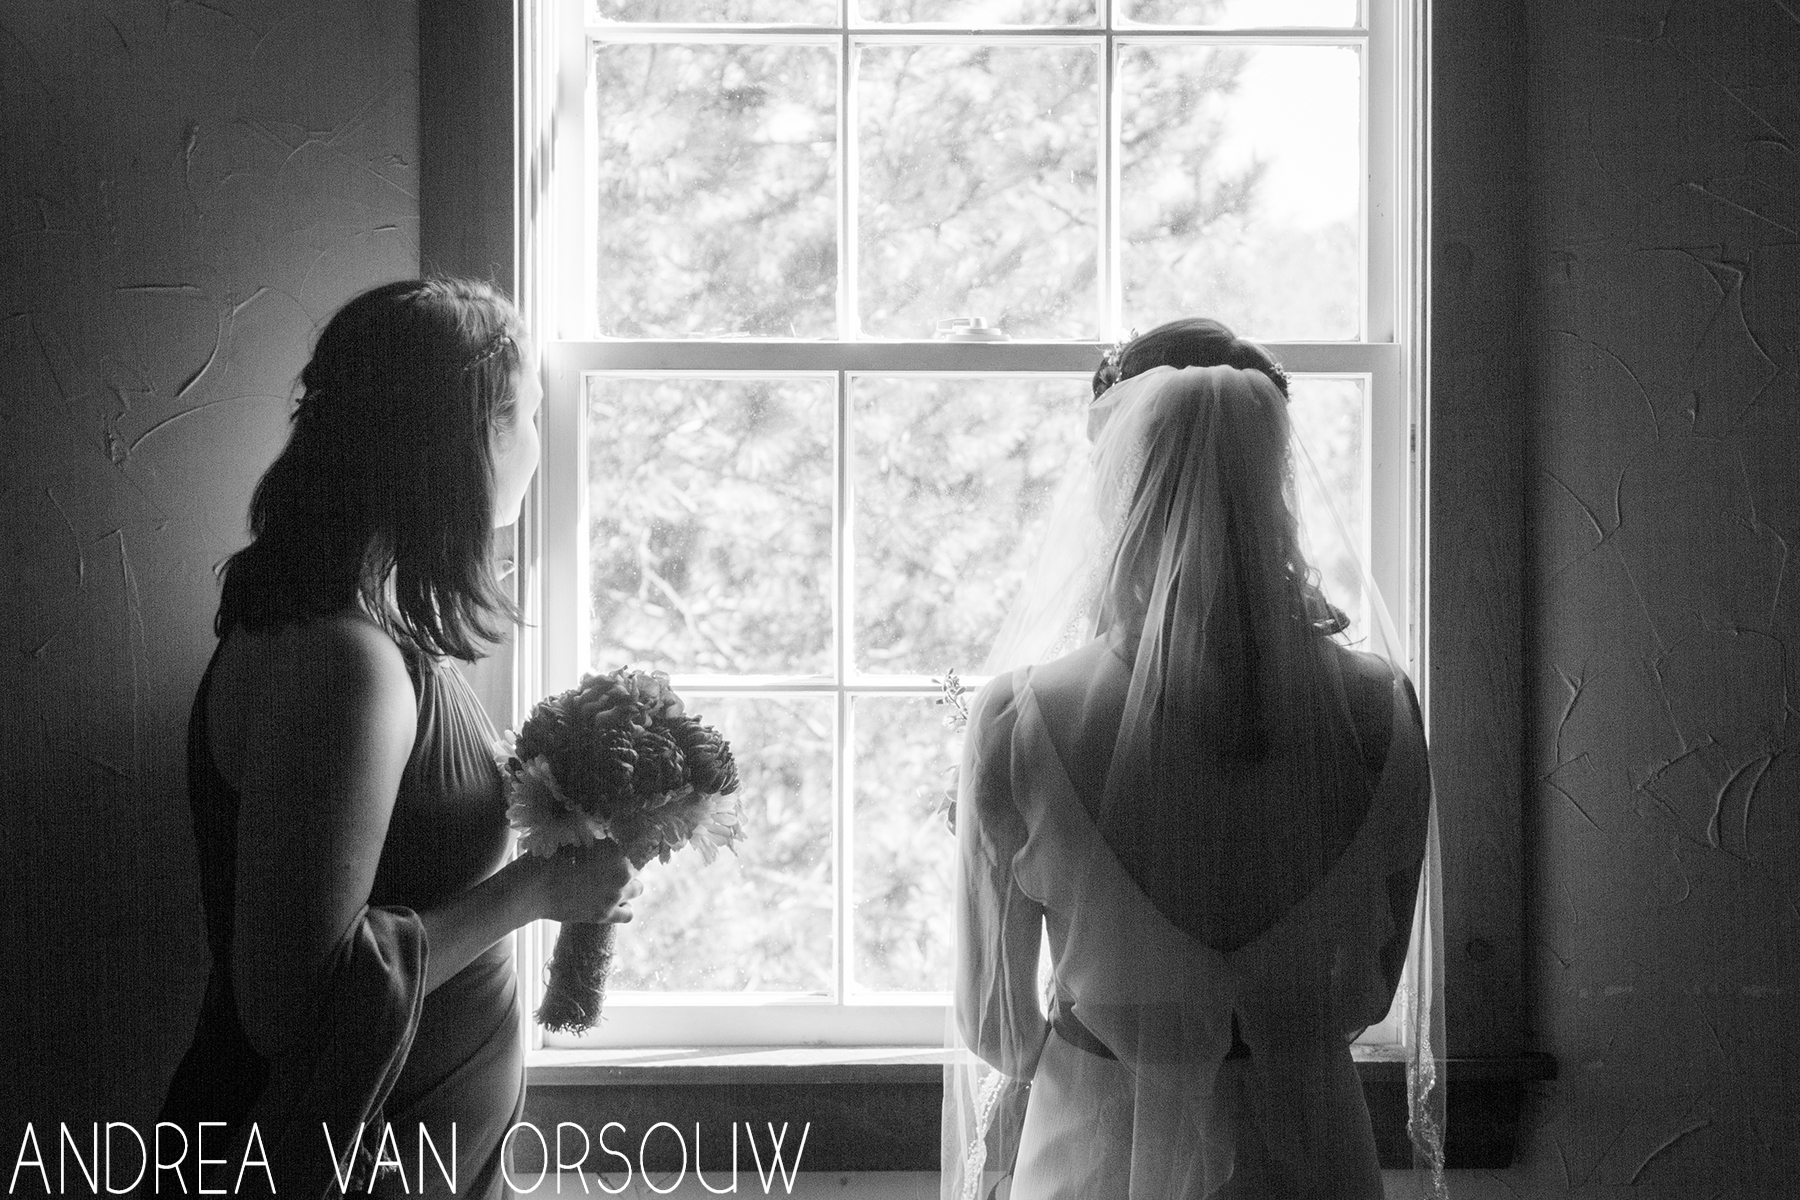 bride_sisters_window.jpg